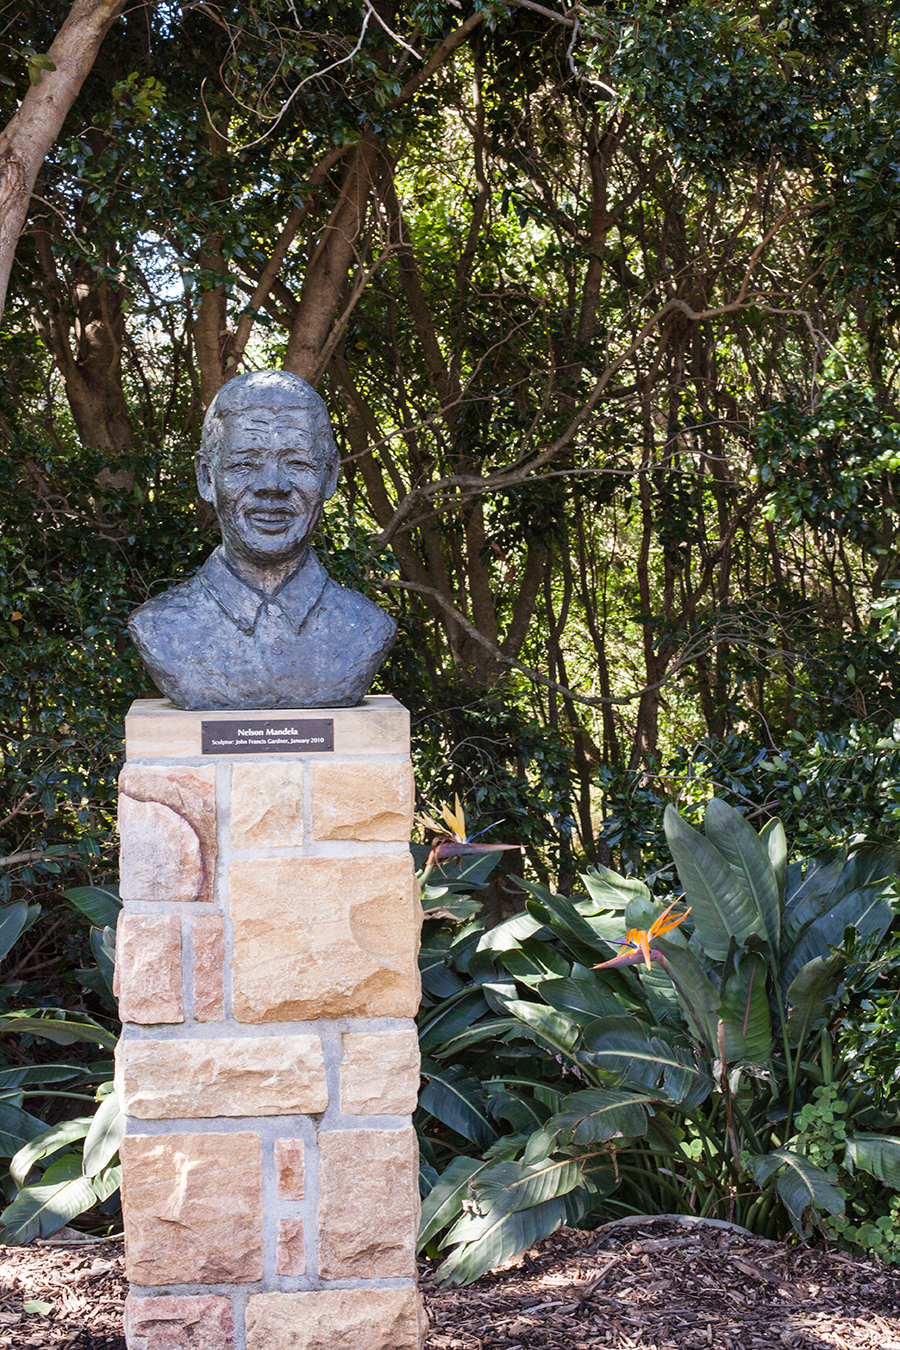 Nelson Mandela bust at Kirstenbosch, South Africa.